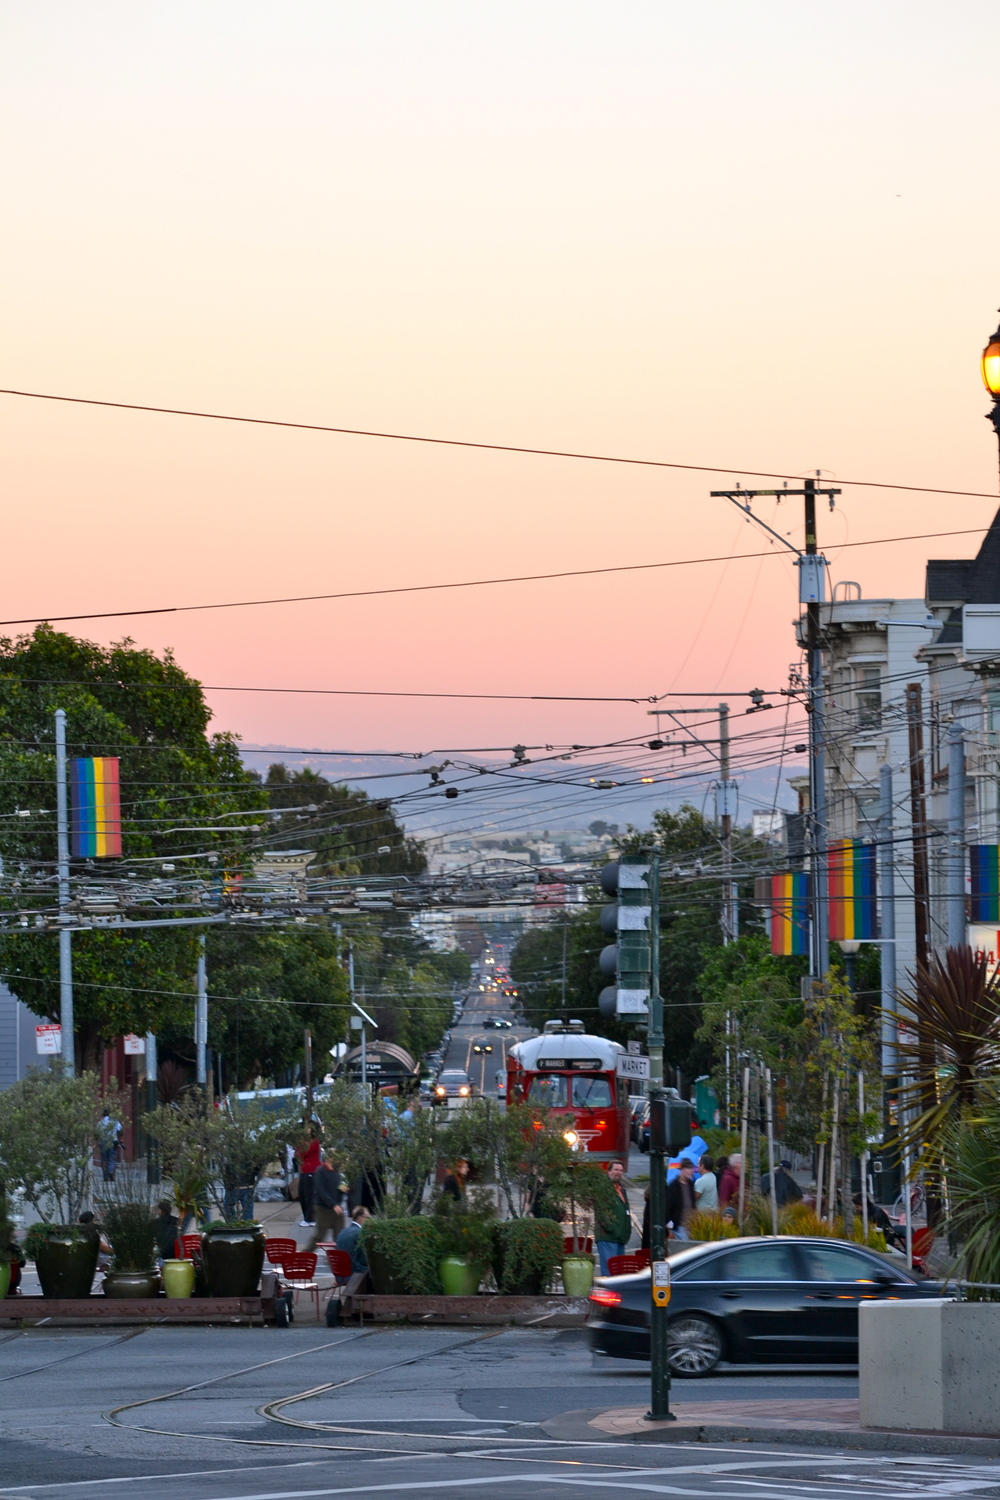 Sunset, Castro, San Francisco, California.